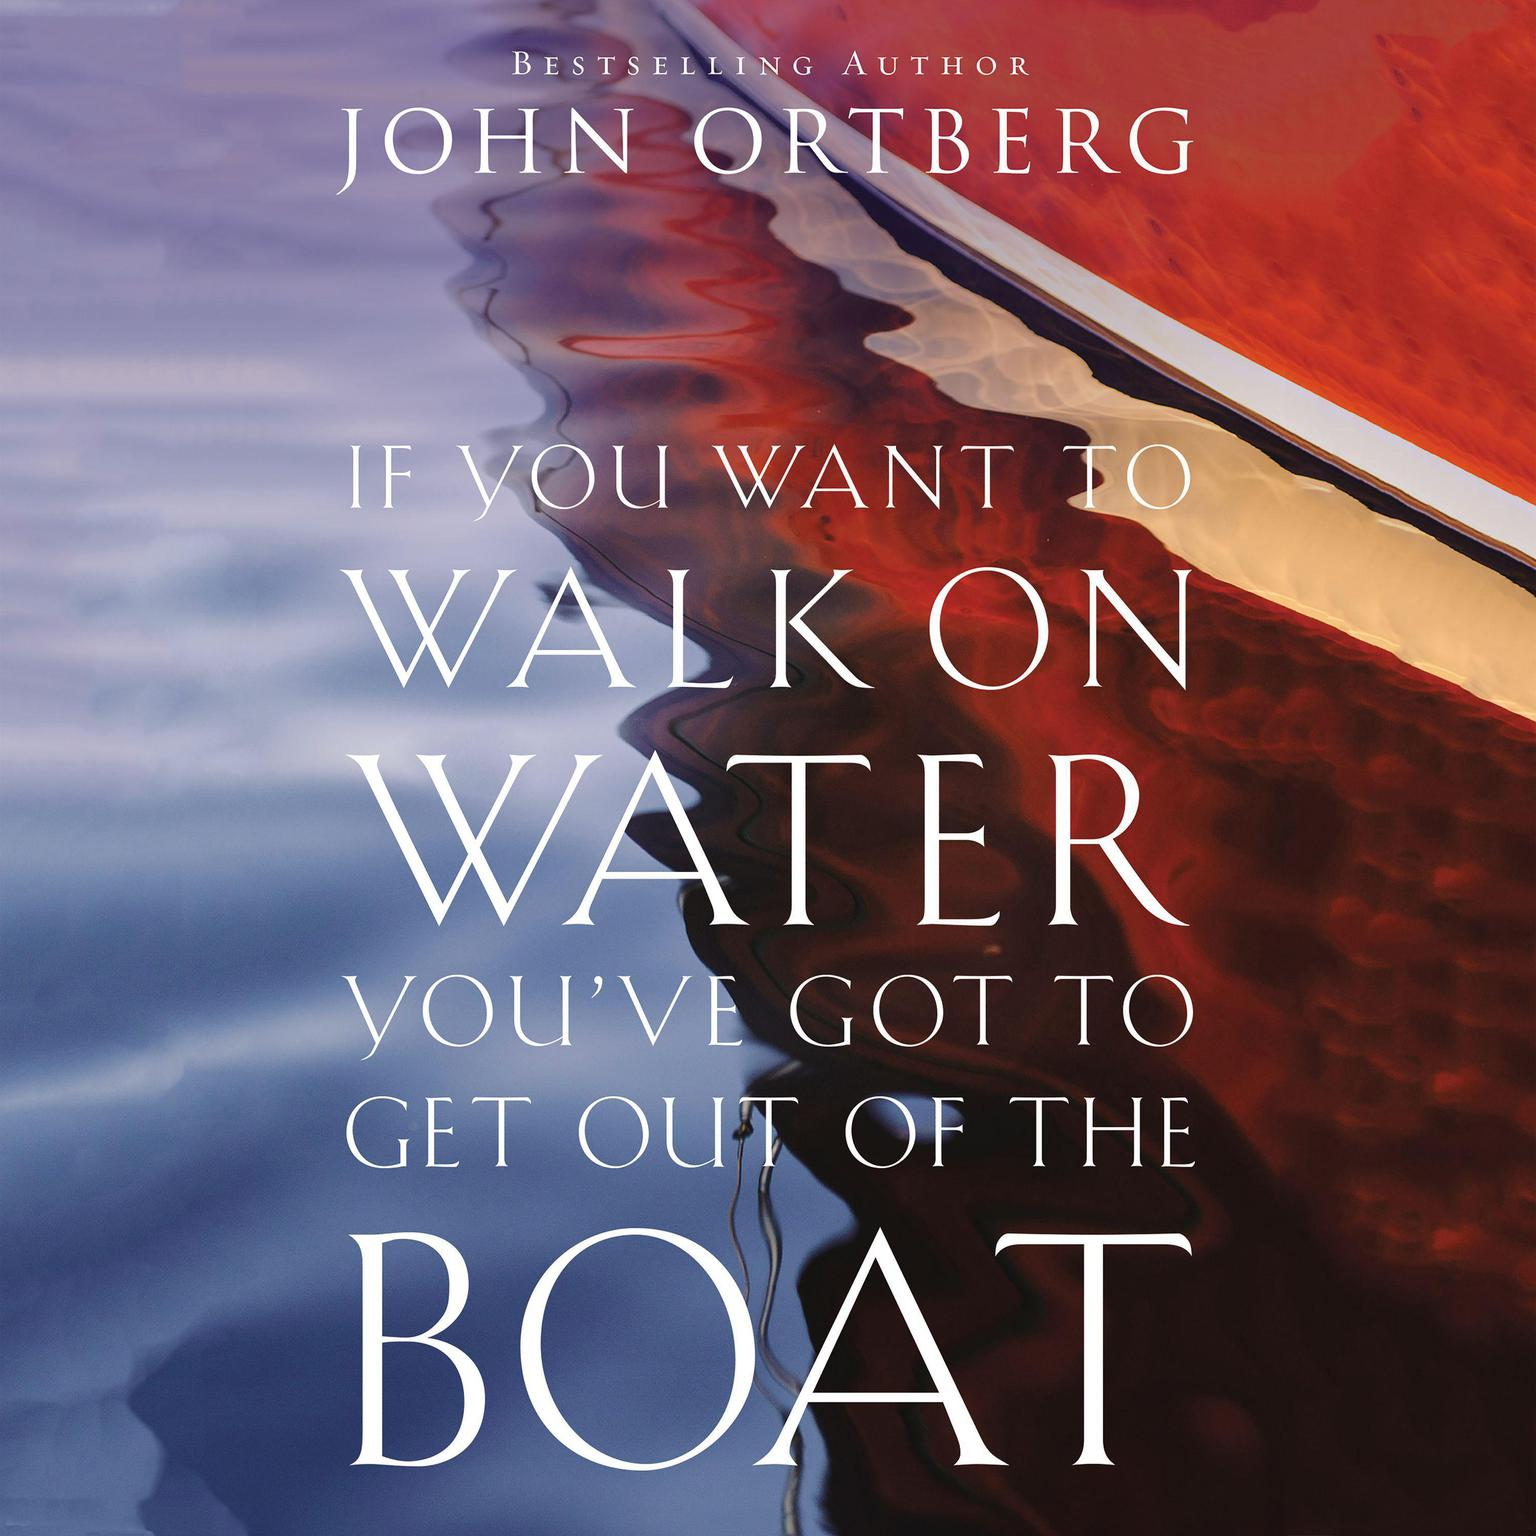 Printable If You Want to Walk on Water, You've Got to Get Out of the Boat Audiobook Cover Art